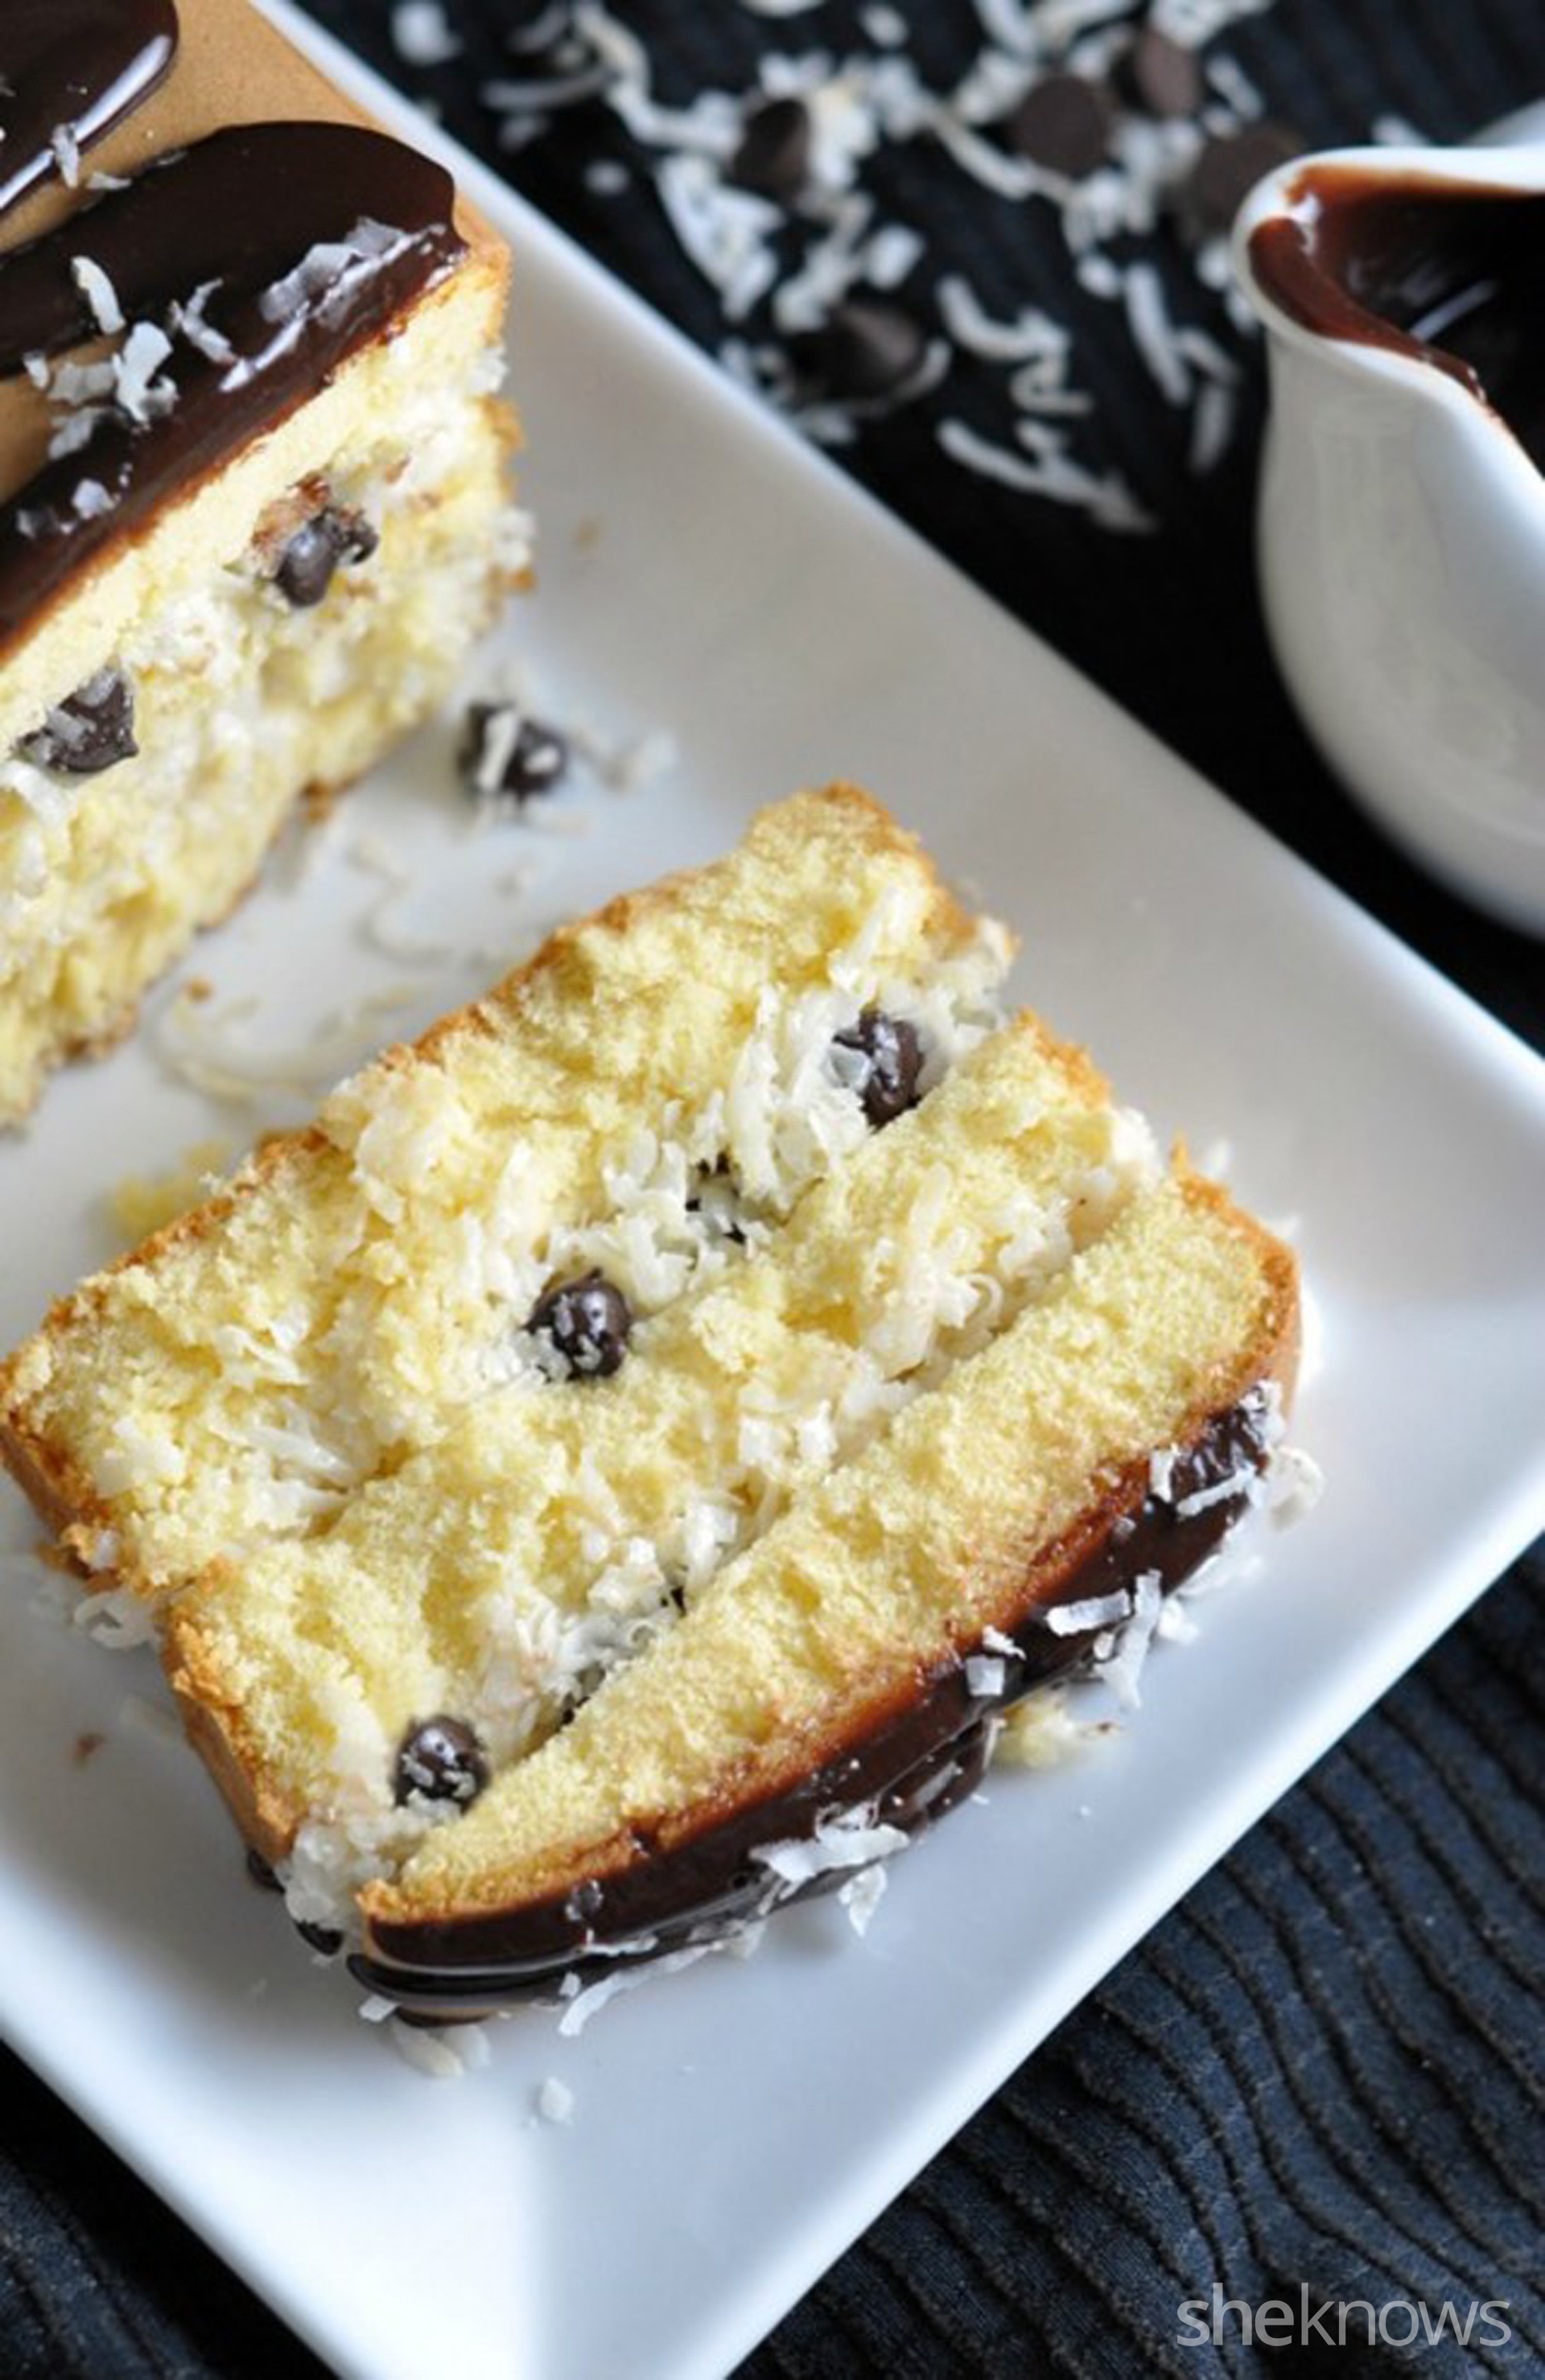 Coconut and chocolate chip layered pound cake is too good to resist